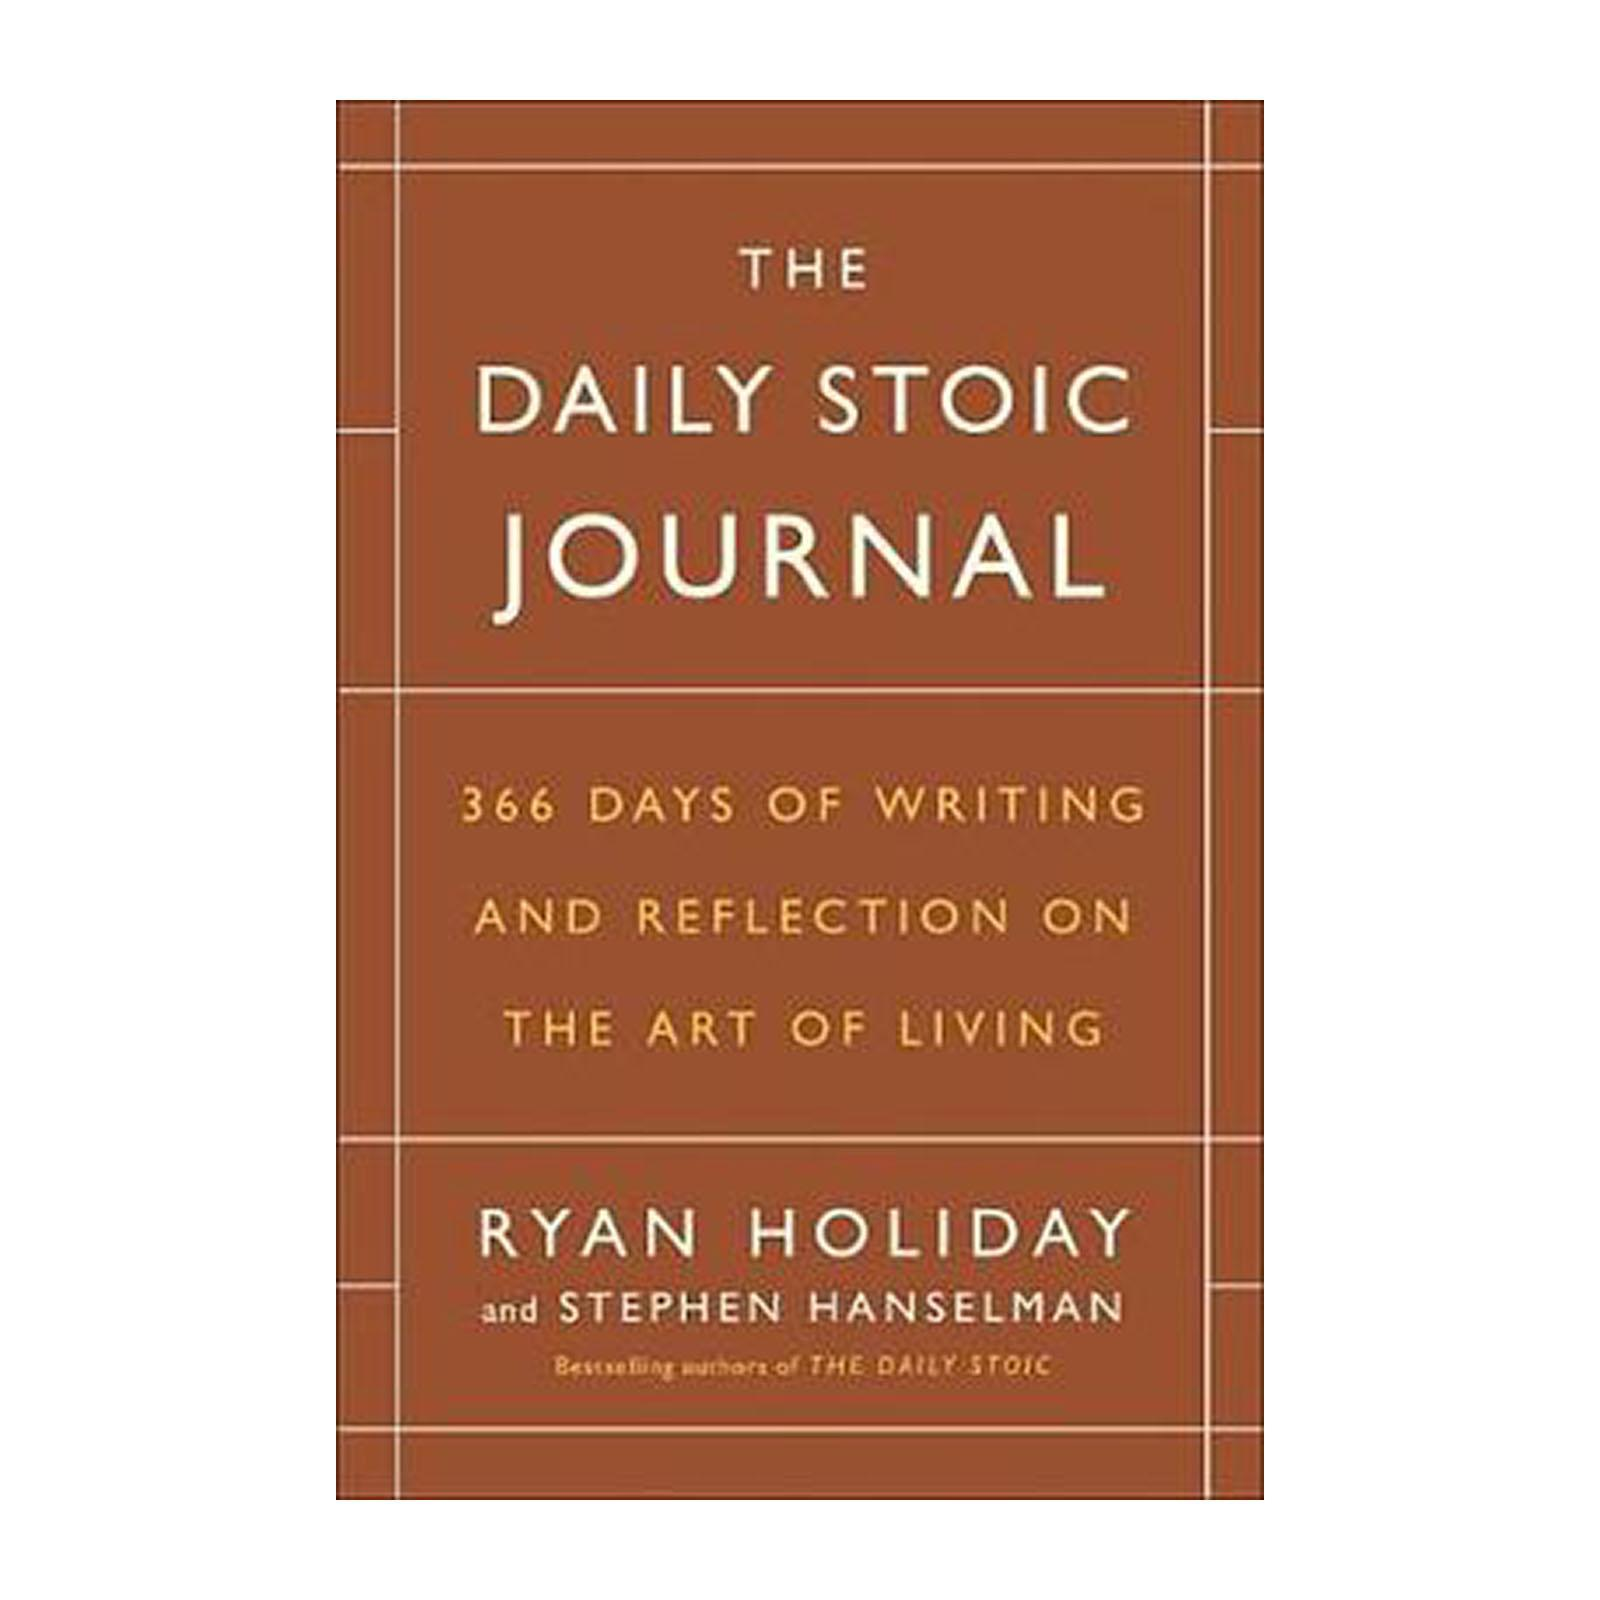 The Daily Stoic Journal: 366 Days Of Writing And Reflection On The Art Of Living (Hardback)